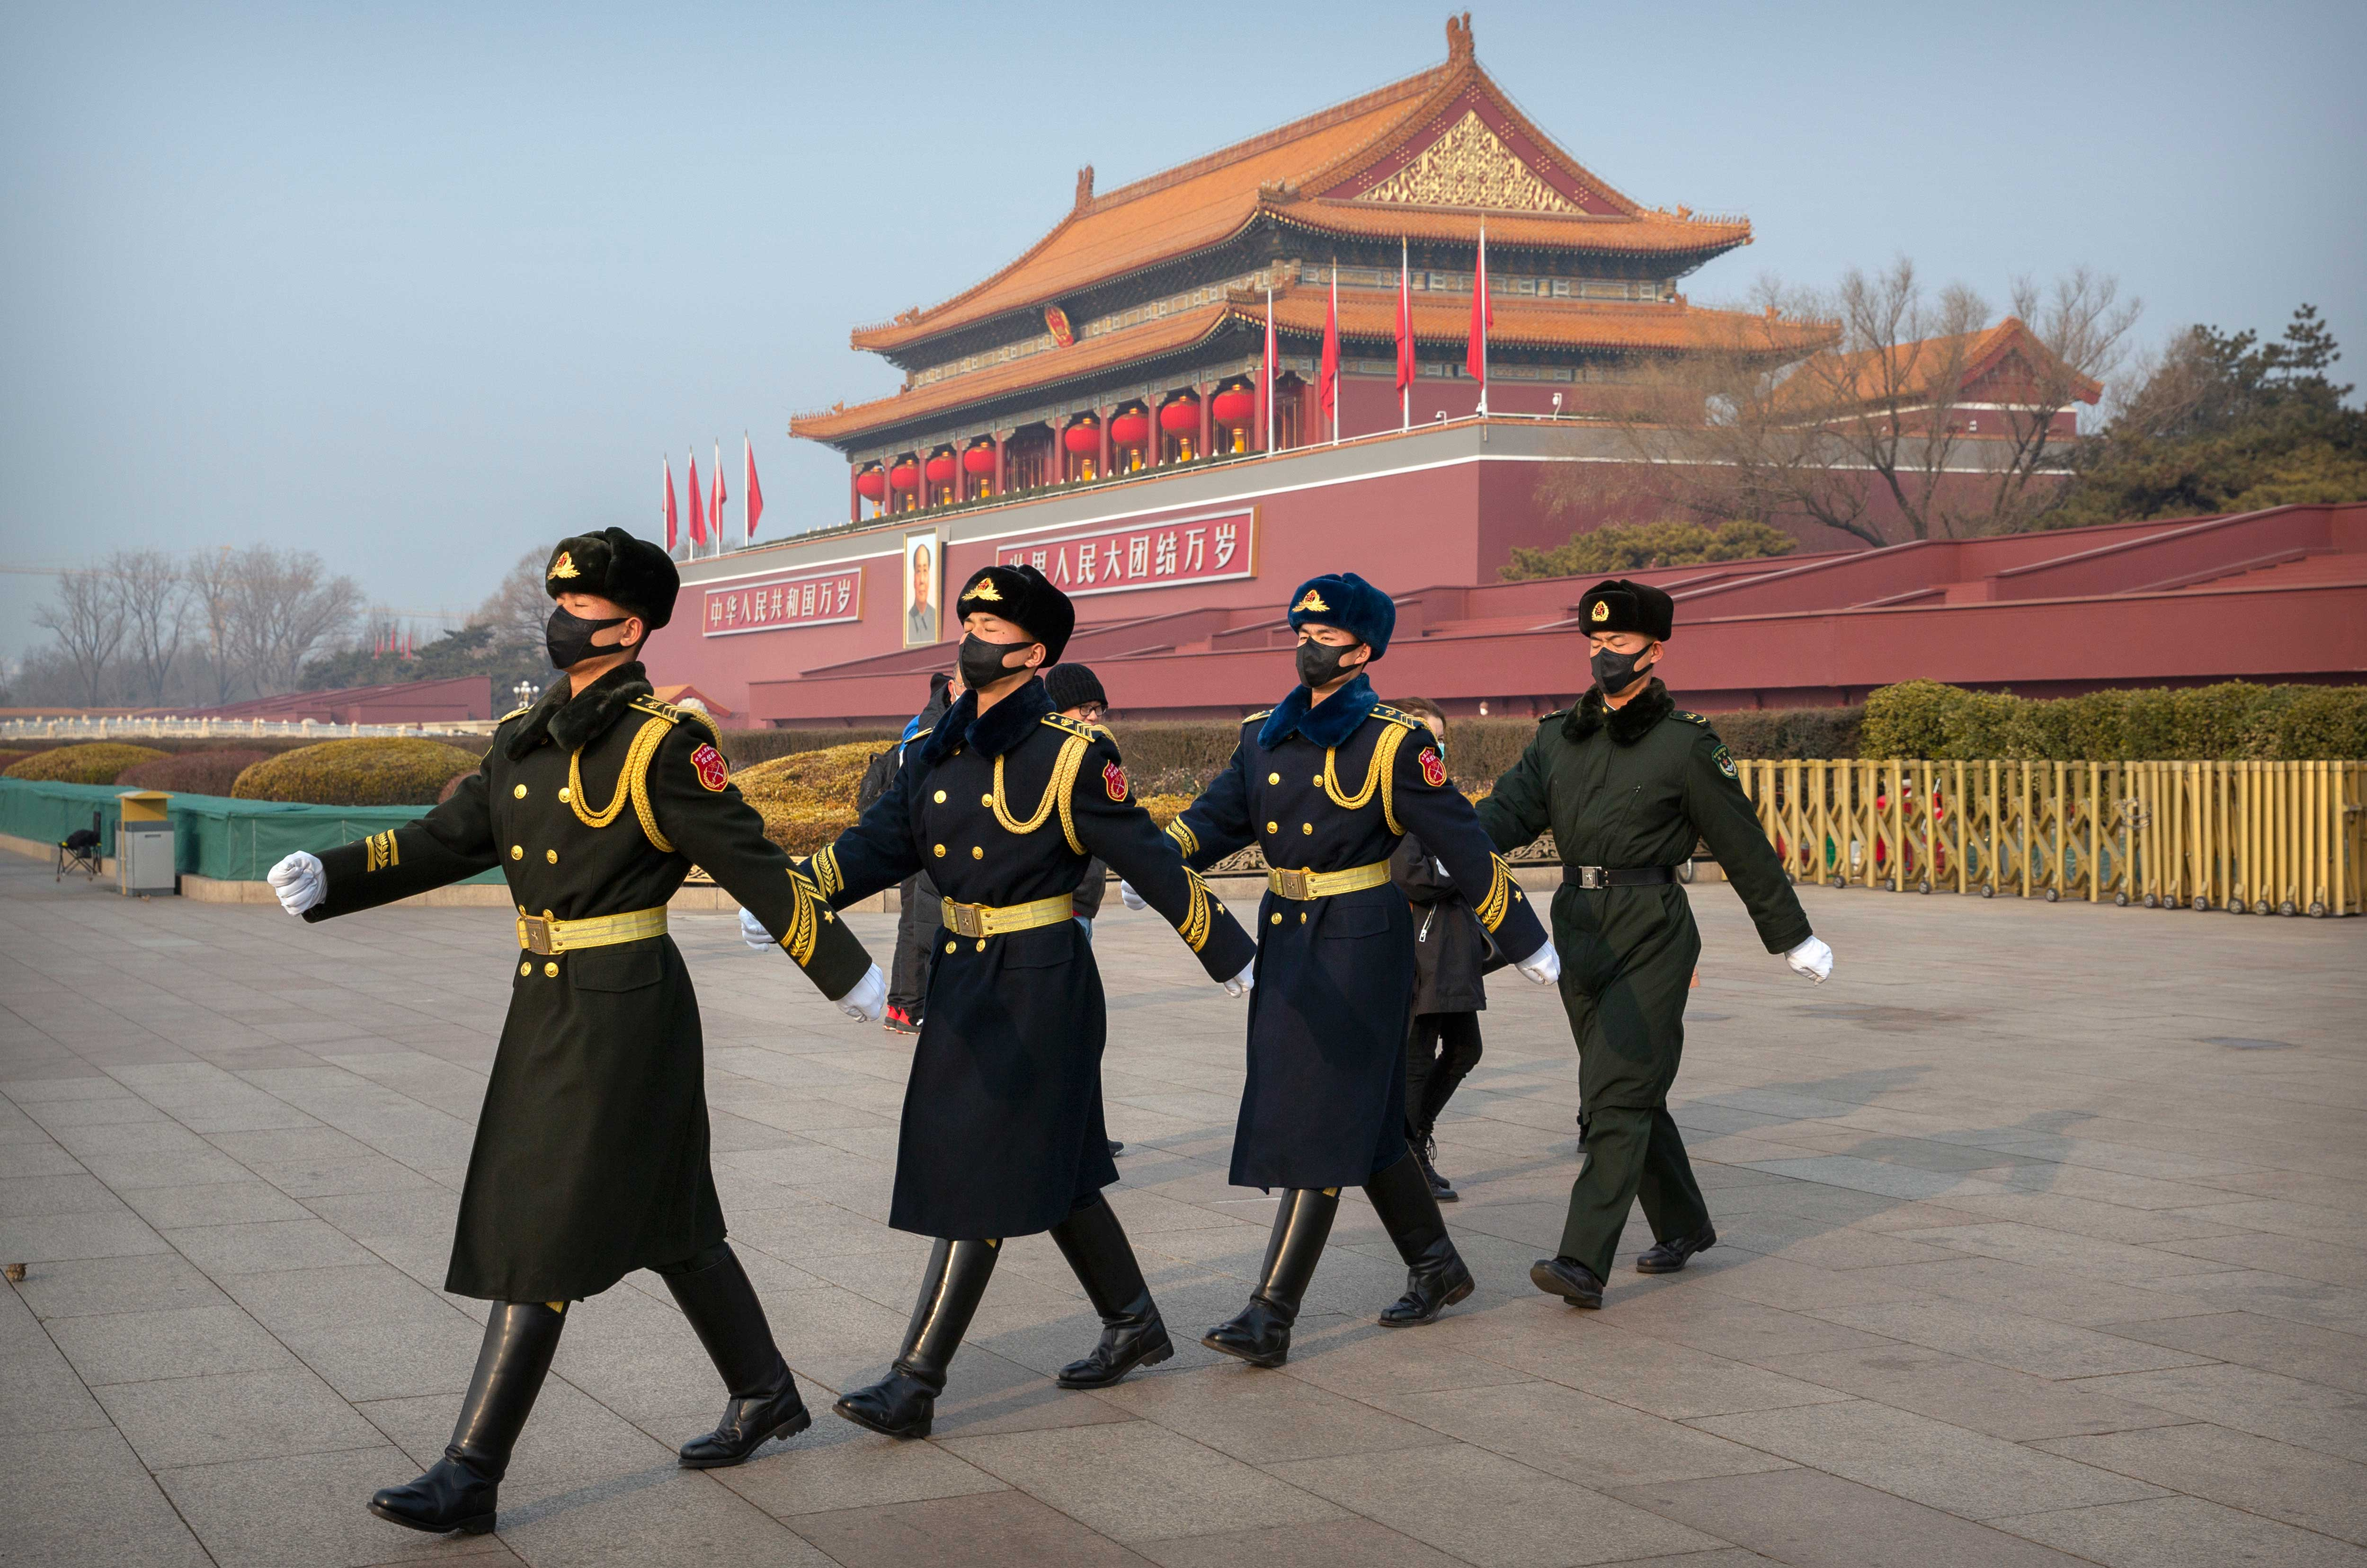 Security officials march in formation near Tiananmen Gate